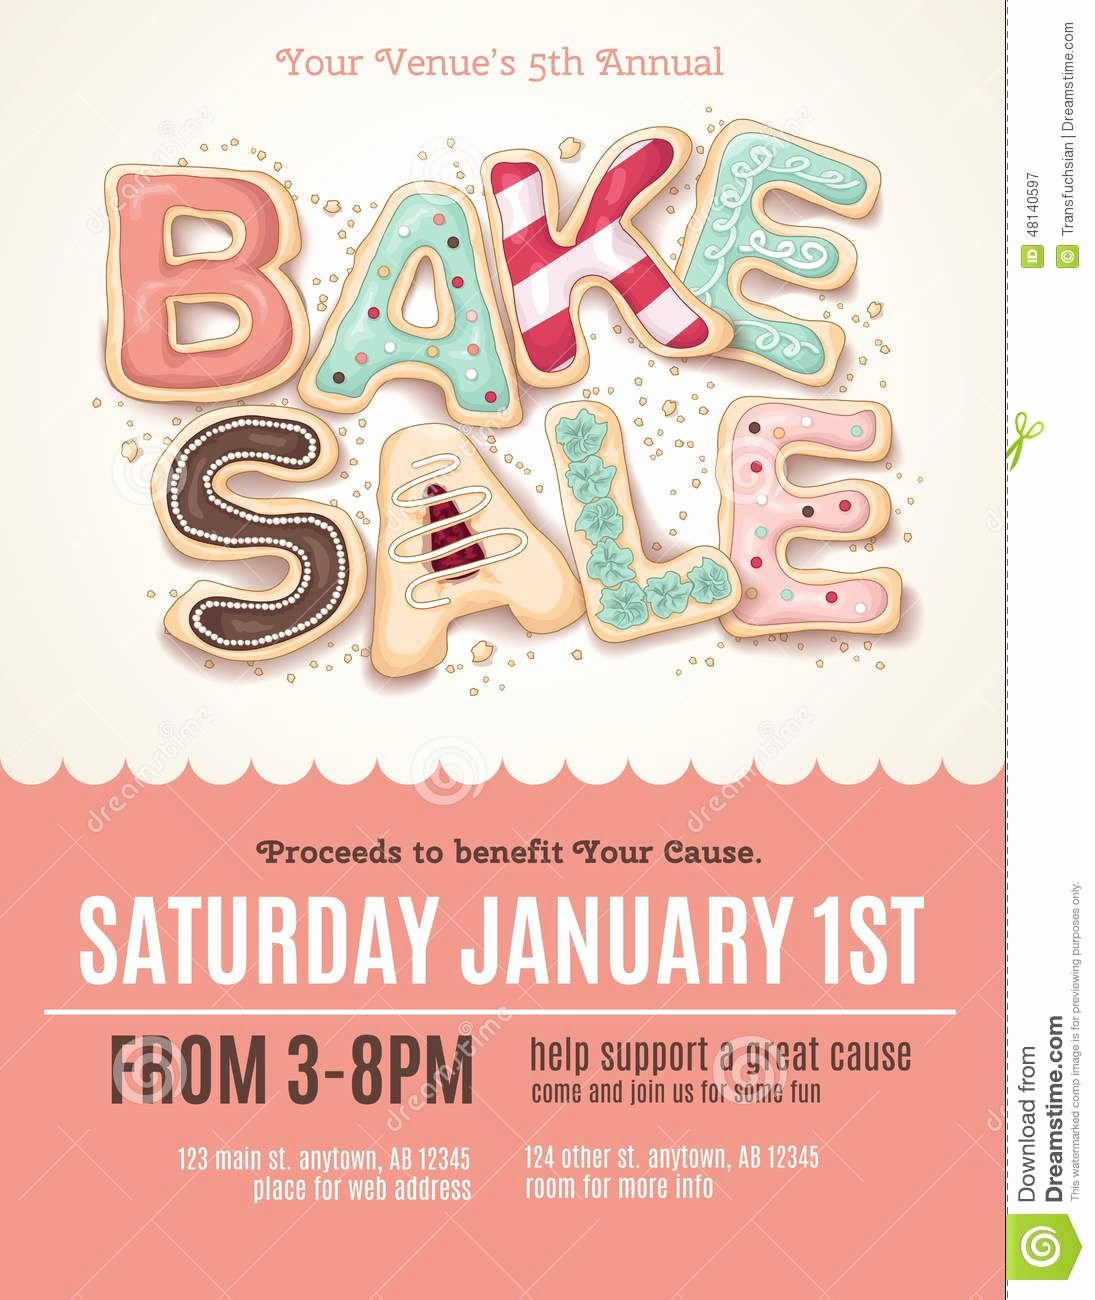 Free Bake Sale Template Luxury Fun Cookie Bake Sale Flyer Template Download From Over